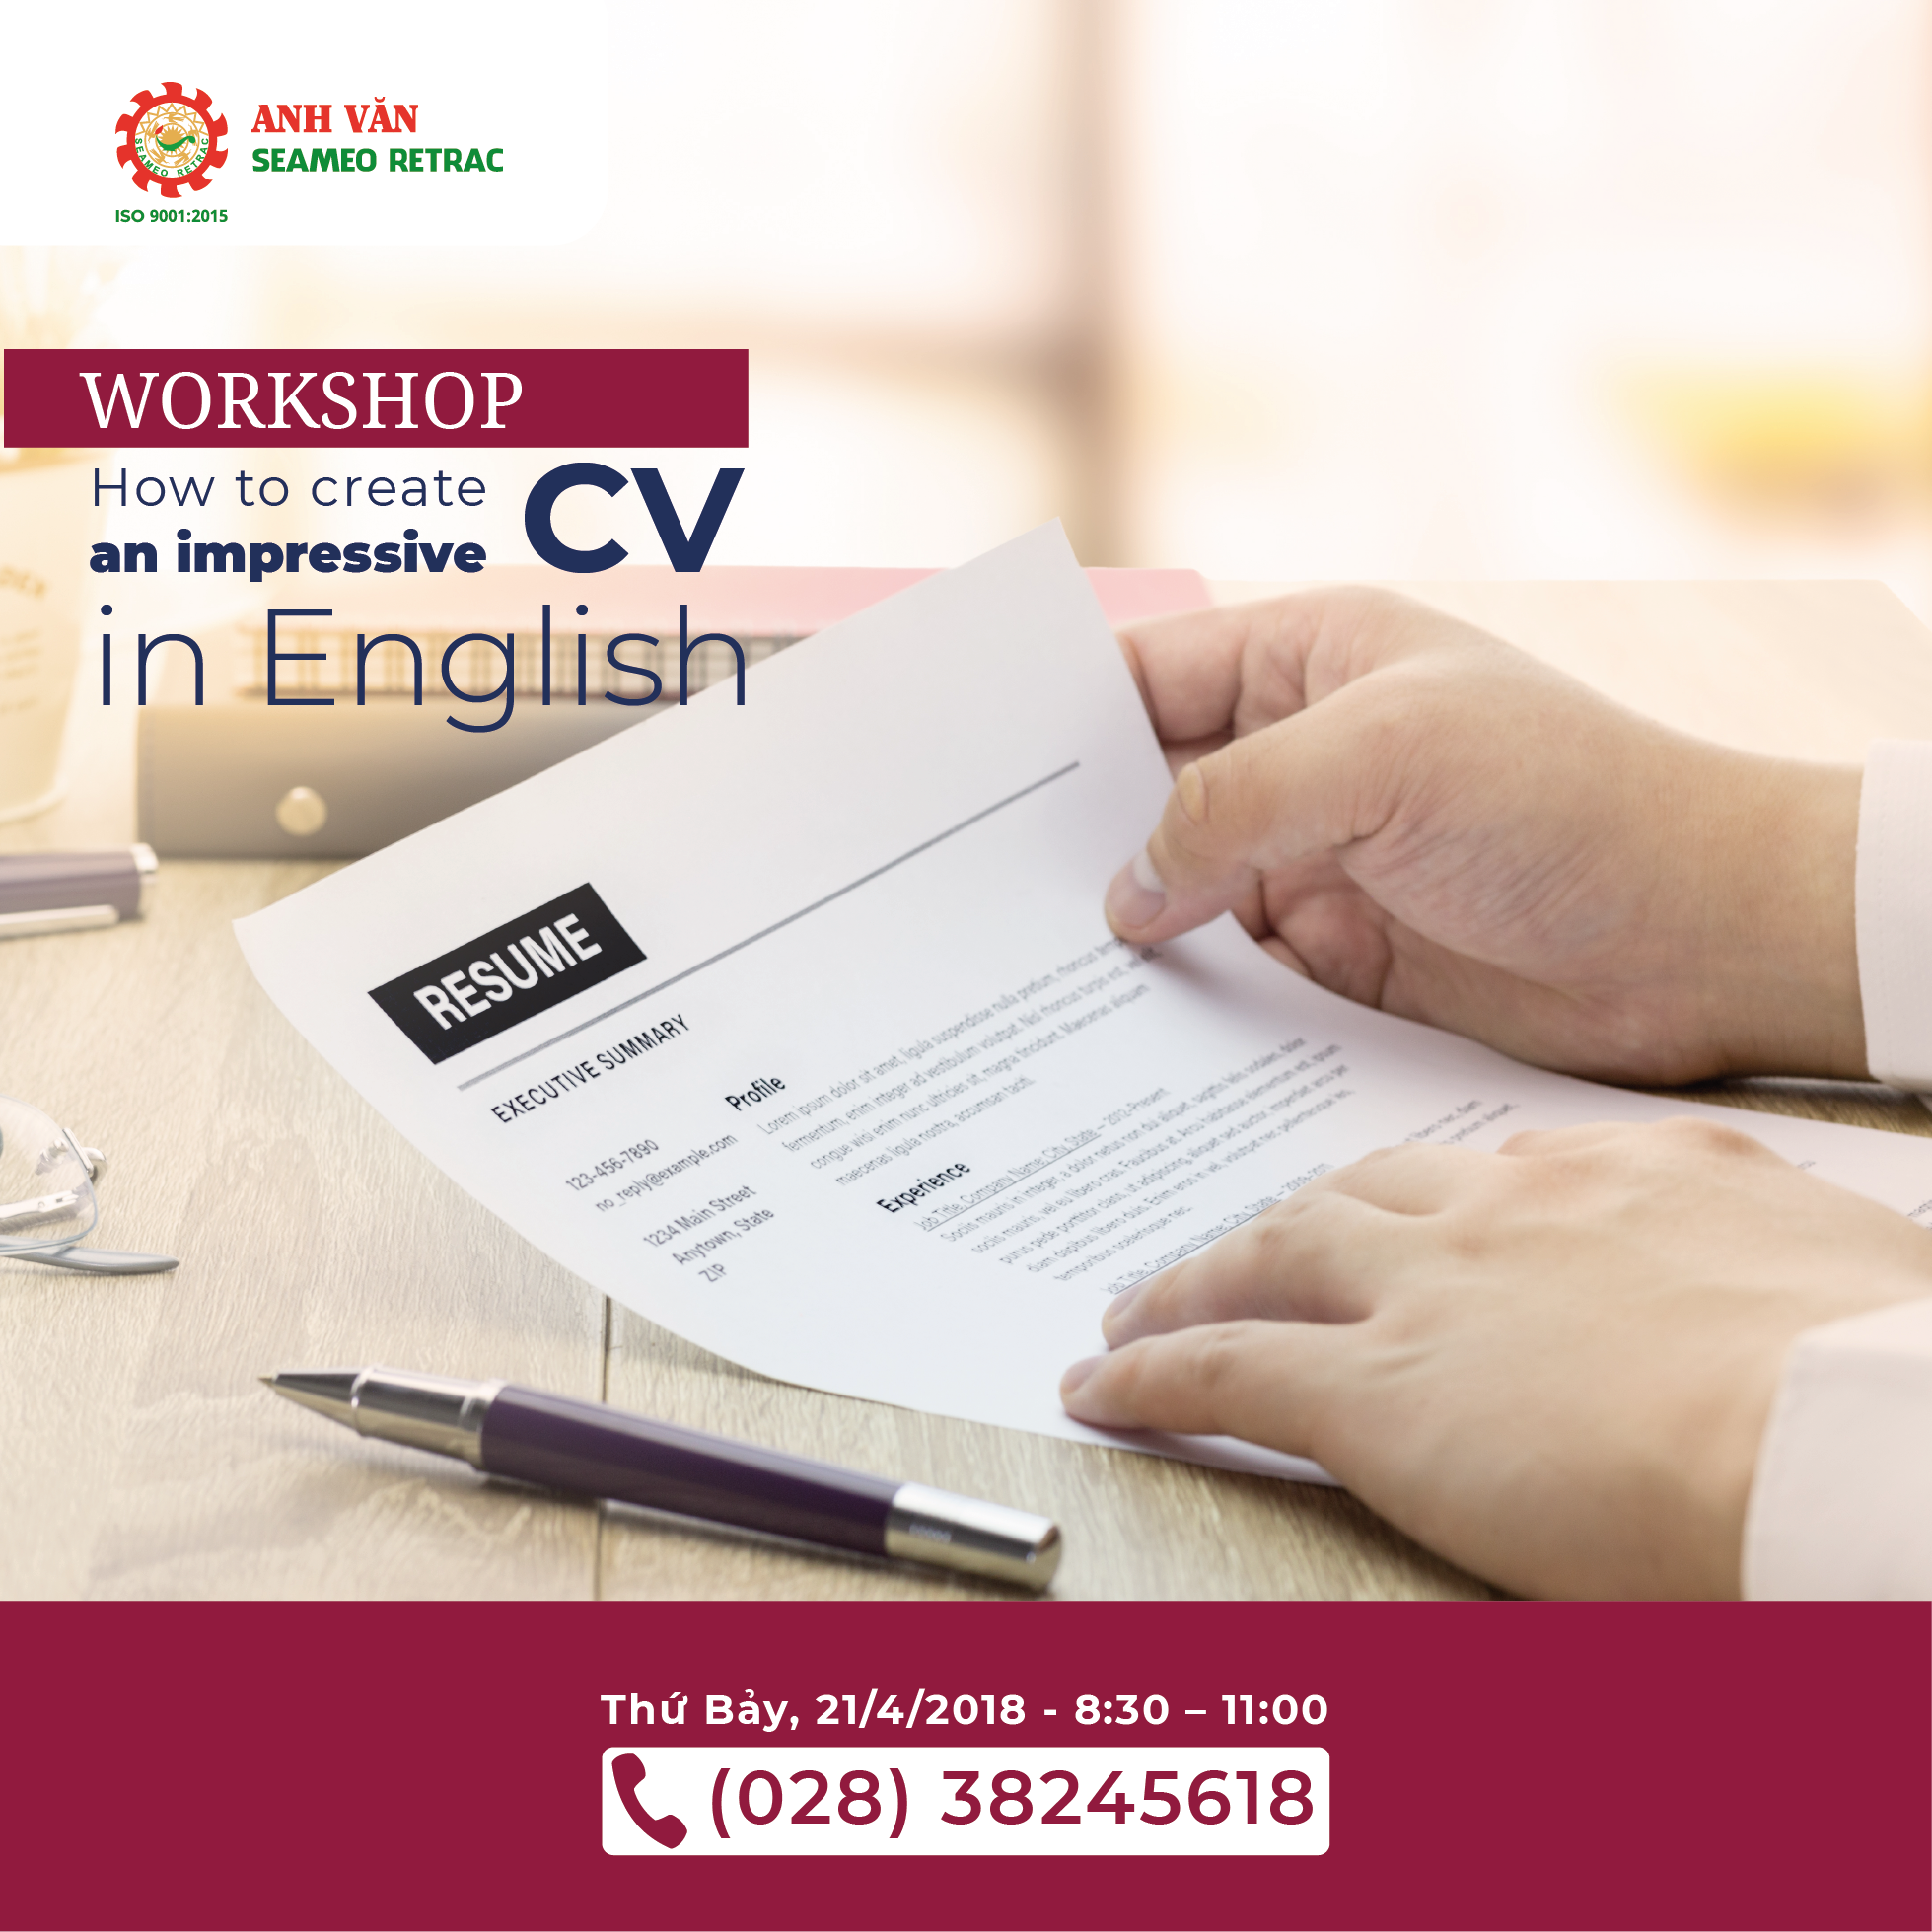 WORKSHOP – How to create an impressive CV in ENGLISH